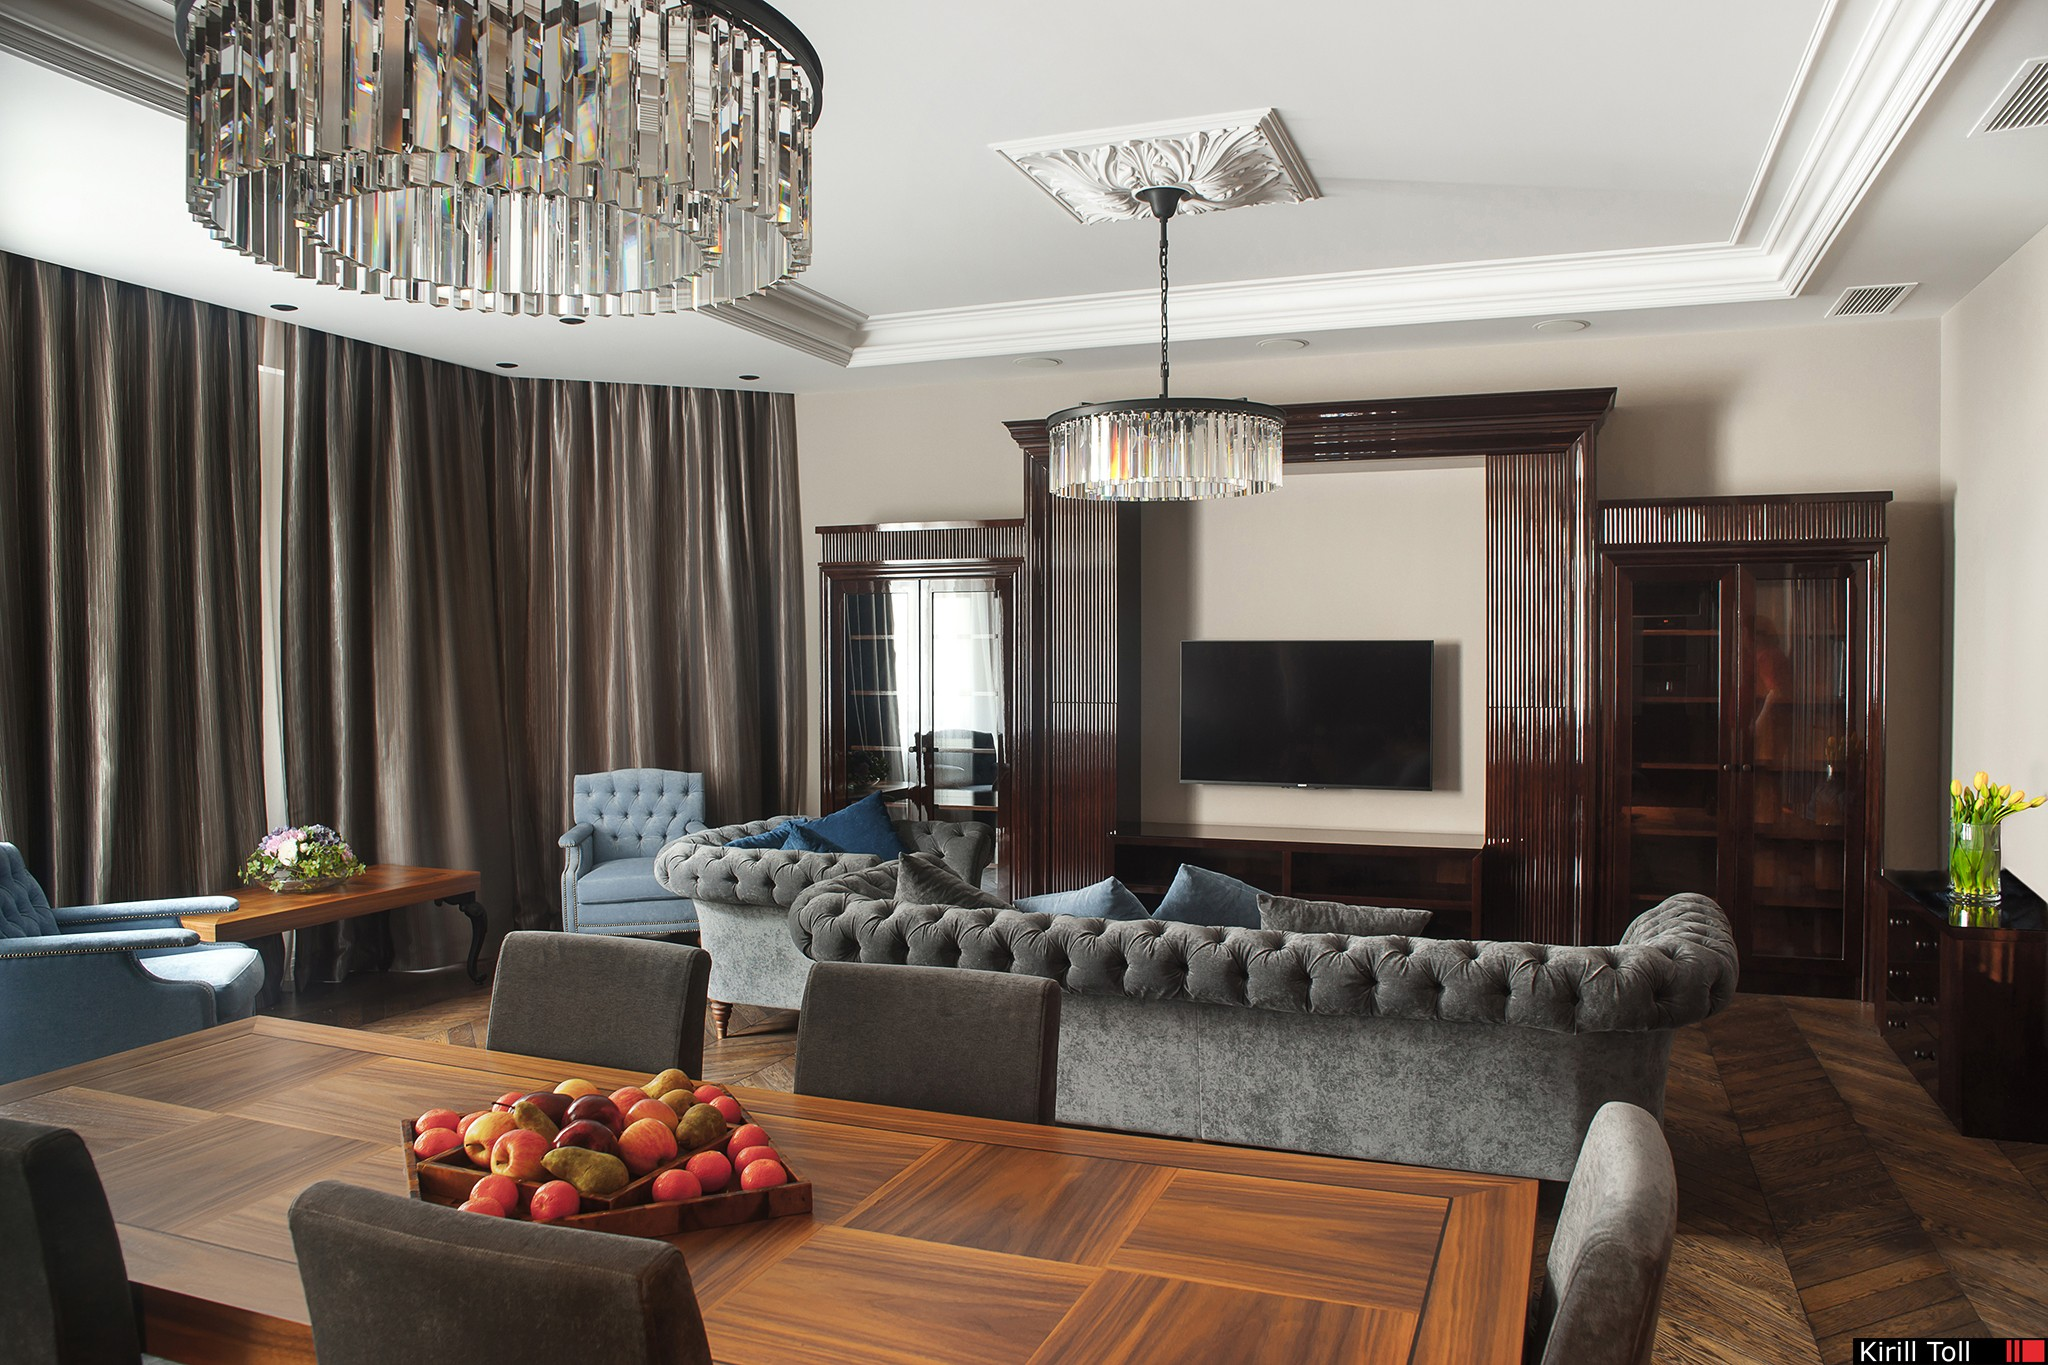 Photos of the interior of the apartment for delivery